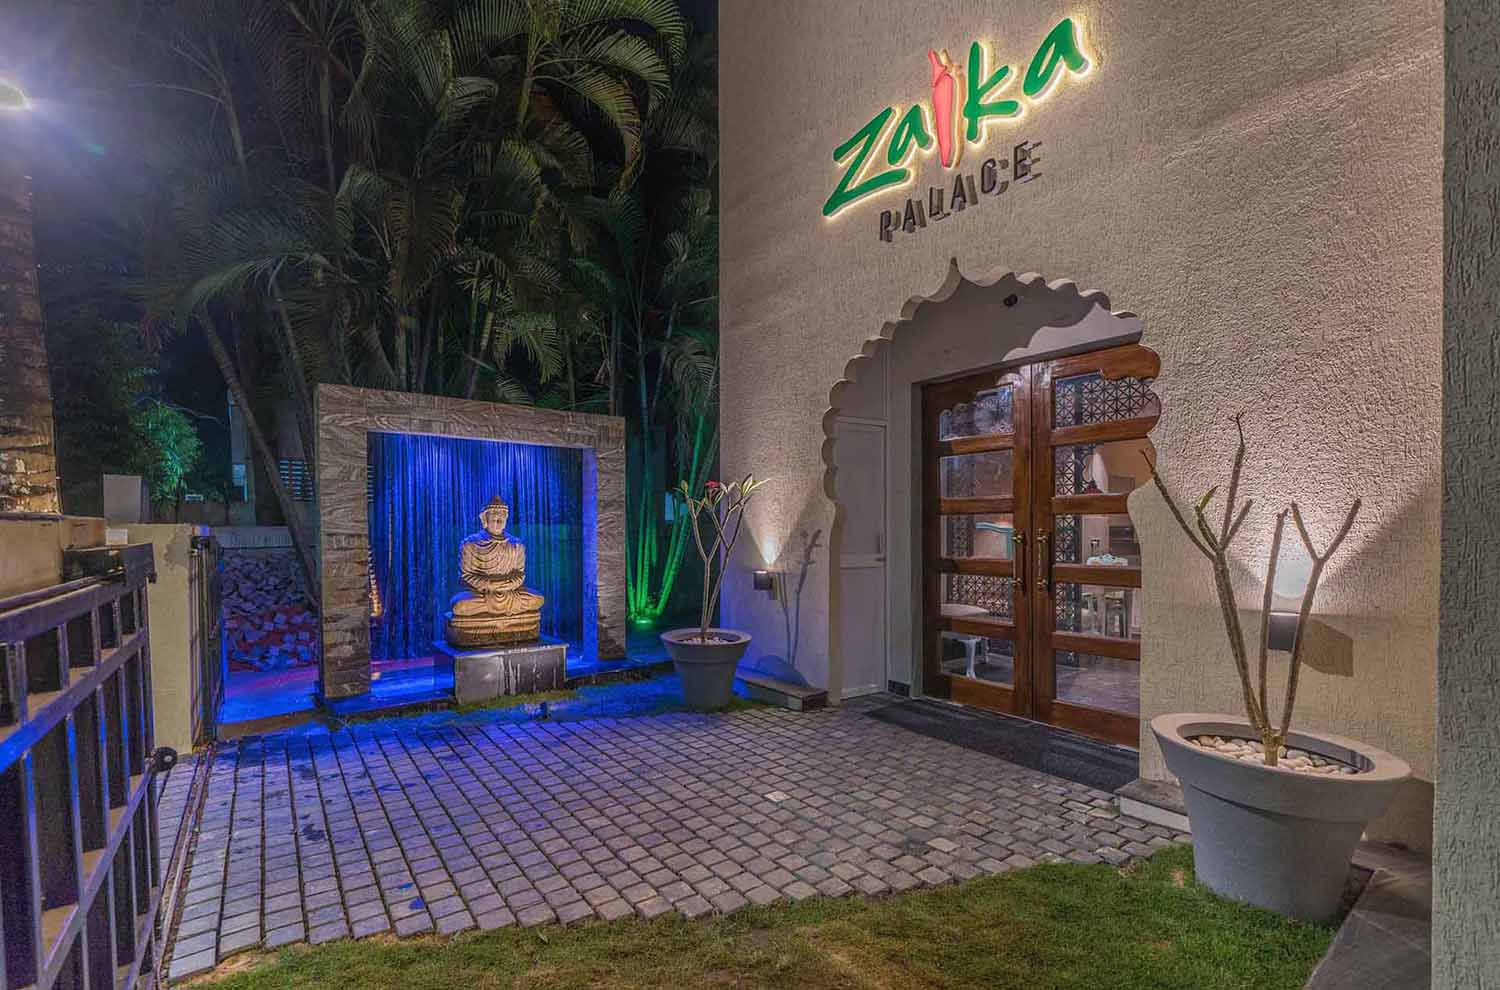 Top Commercial Architects of Bhubaneswar Zaika Palace.